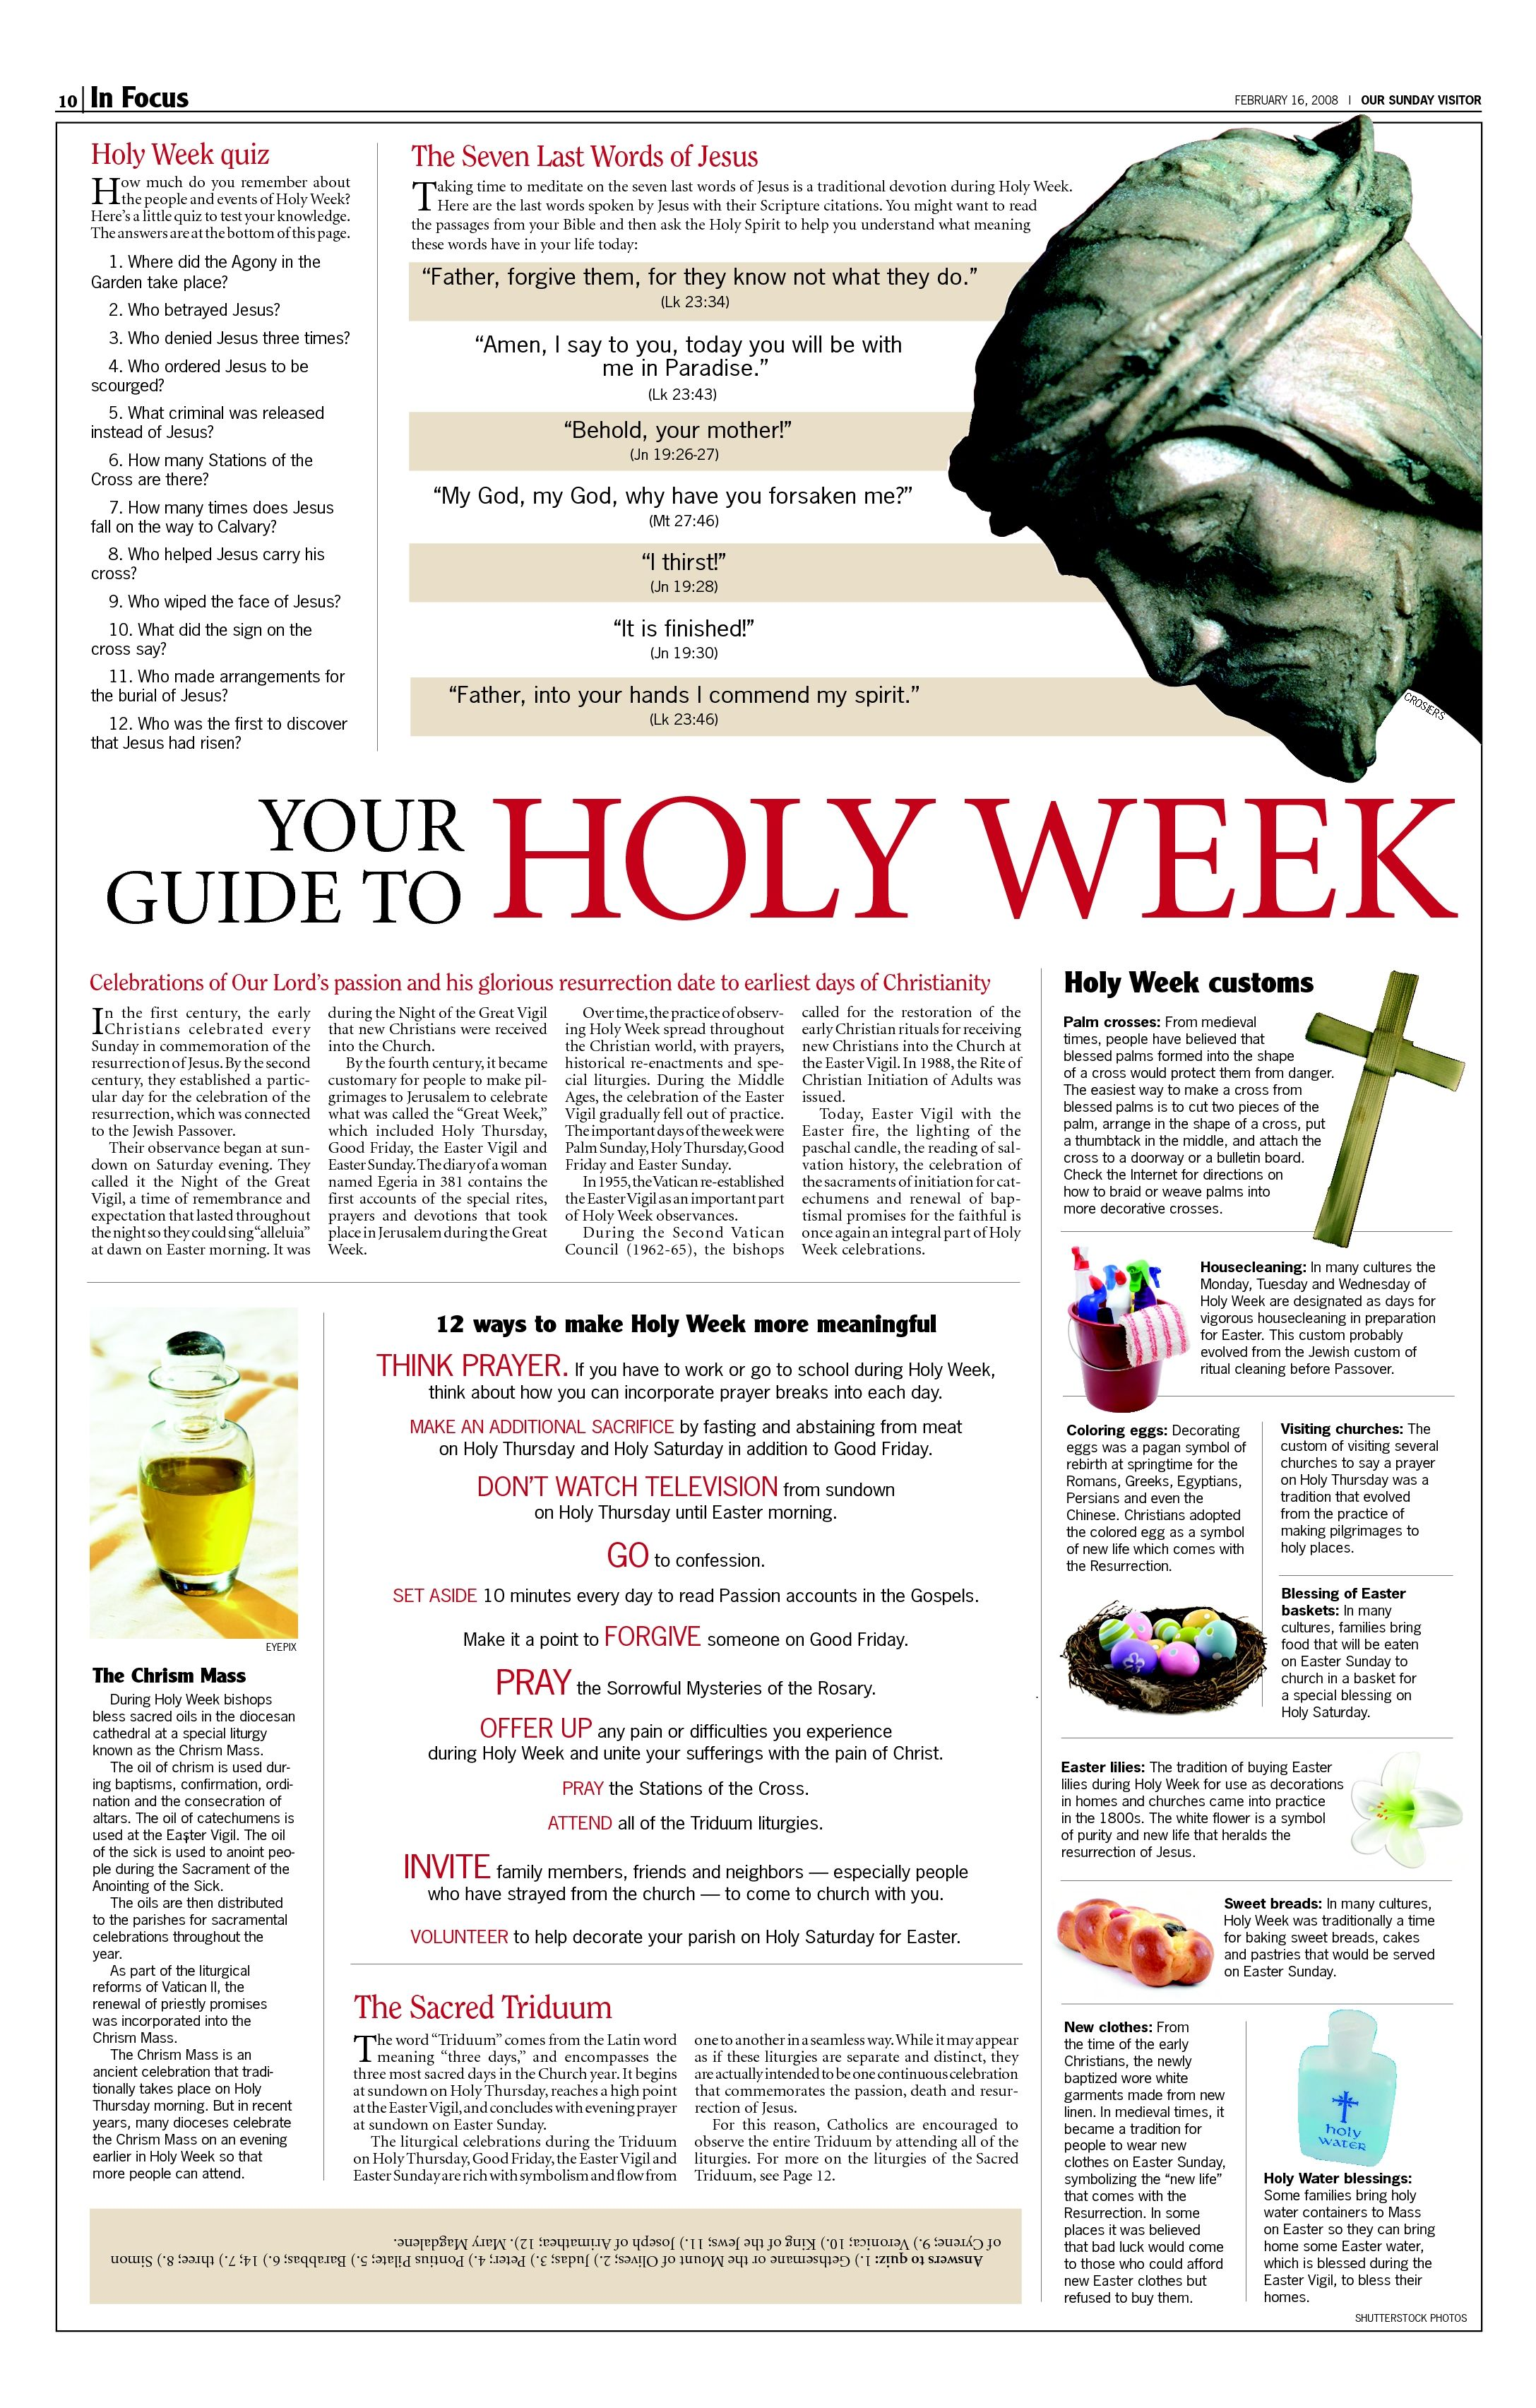 Holy Week This Is A Catholic Document But Has Some Great